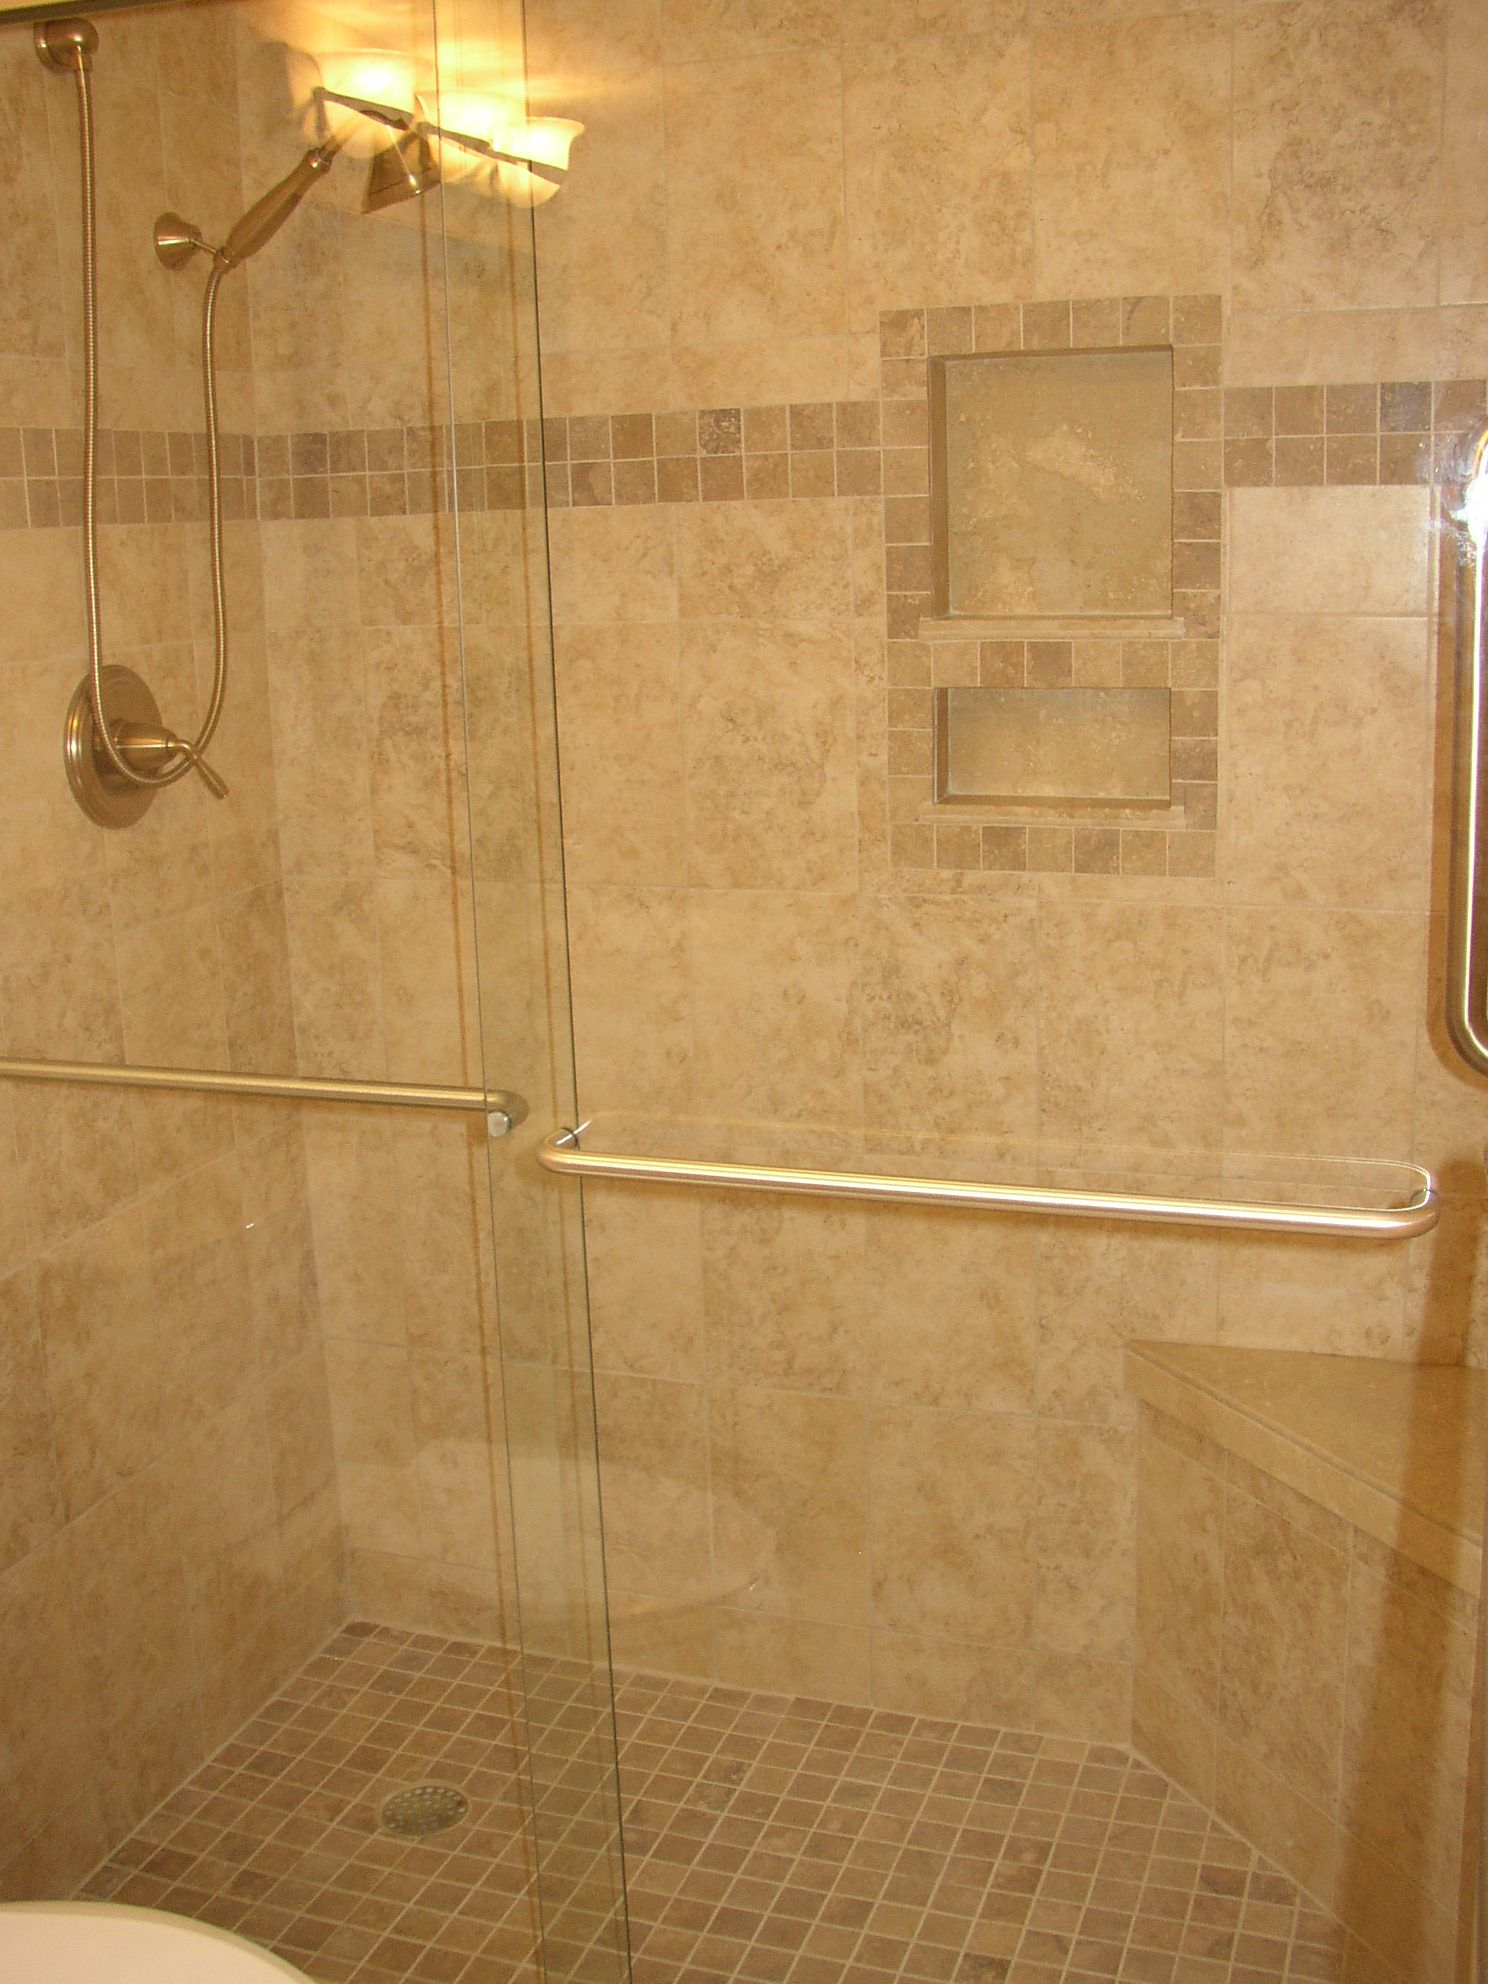 Bathroom shower lights - Shower Lights Niches For Shower Bath Storage Are A Basic Element Of Our Renovations